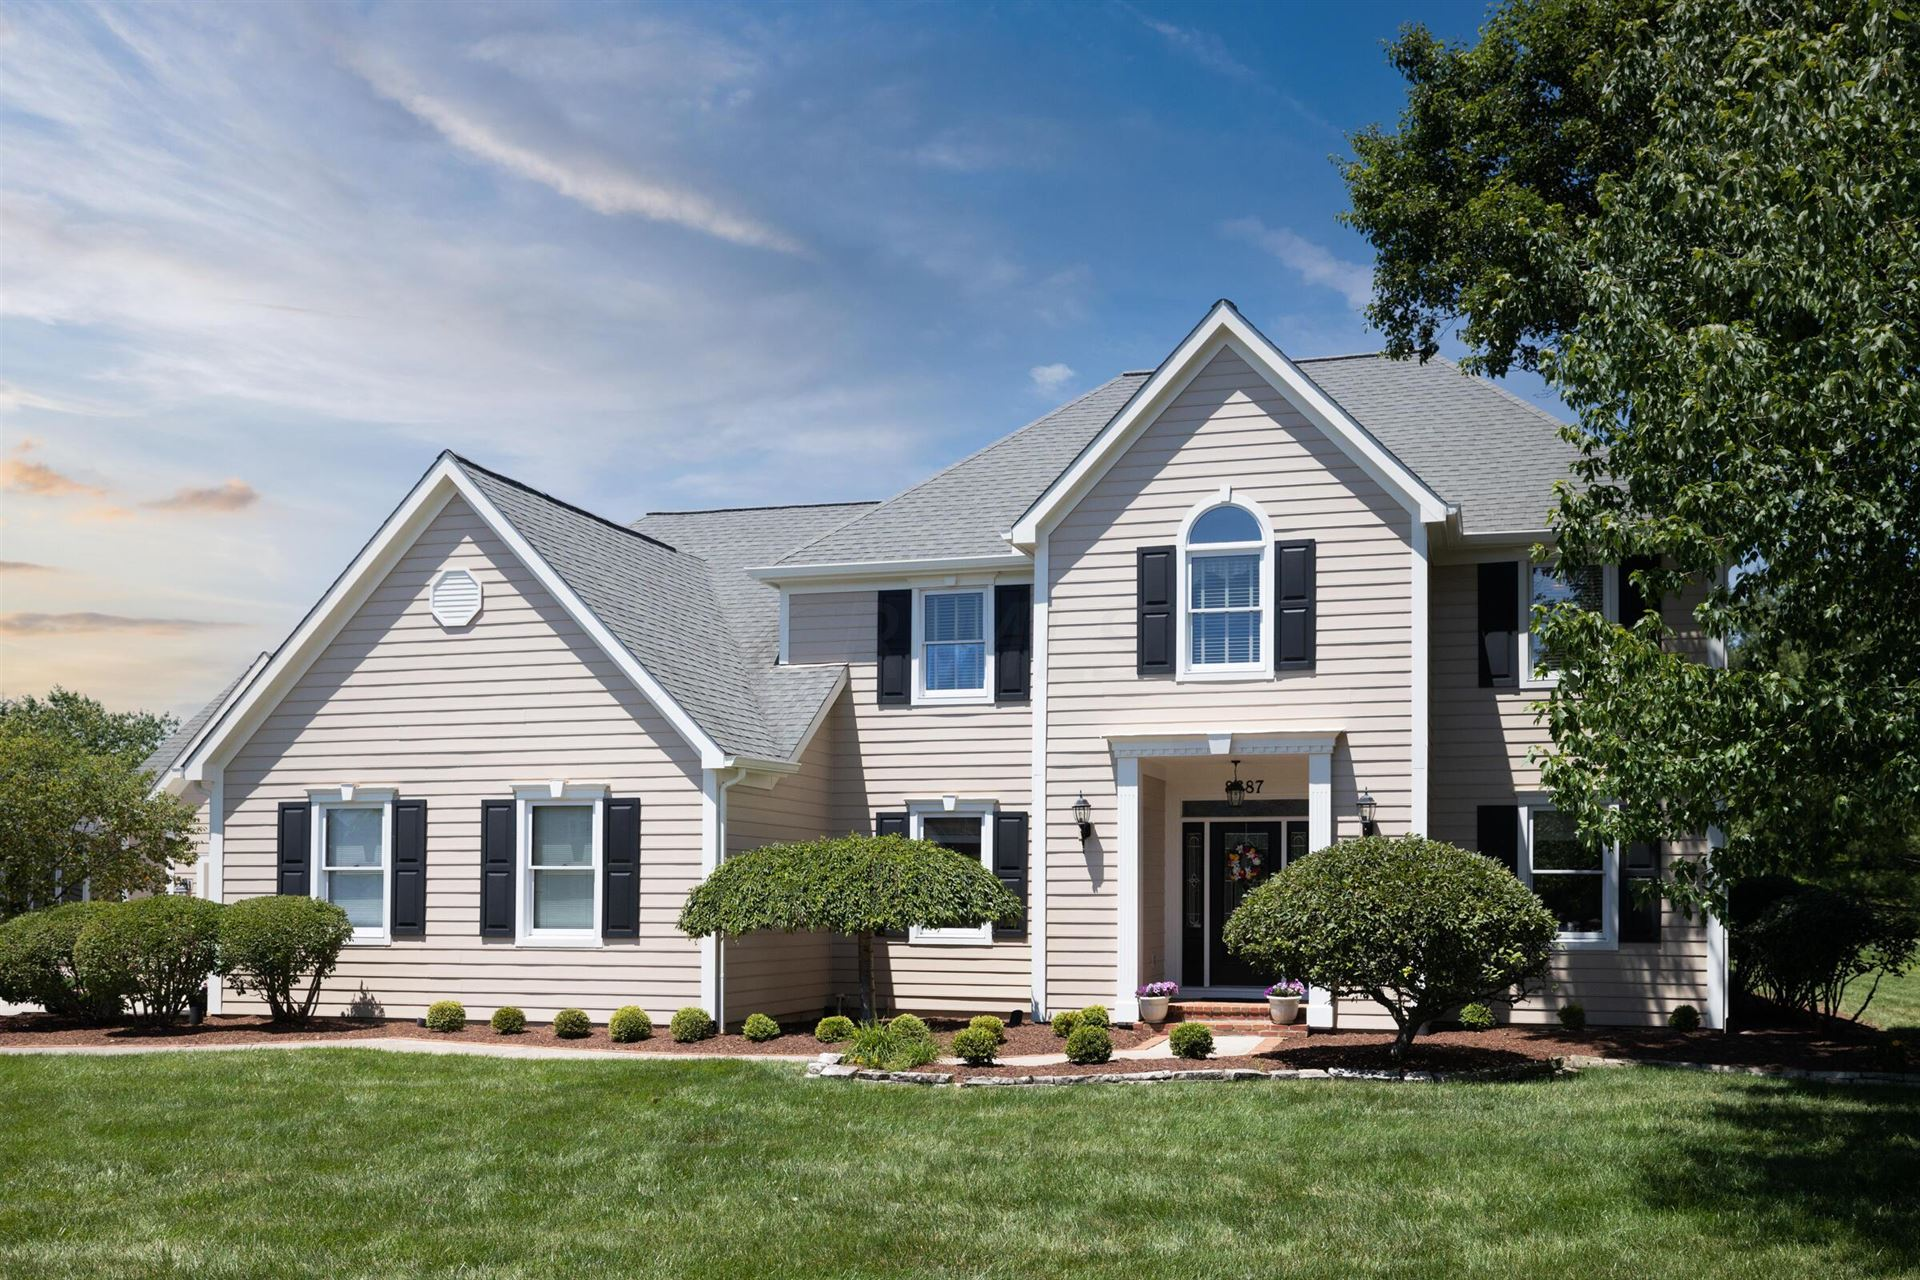 Photo of 8687 Bunch Flower Court, Westerville, OH 43082 (MLS # 221021869)